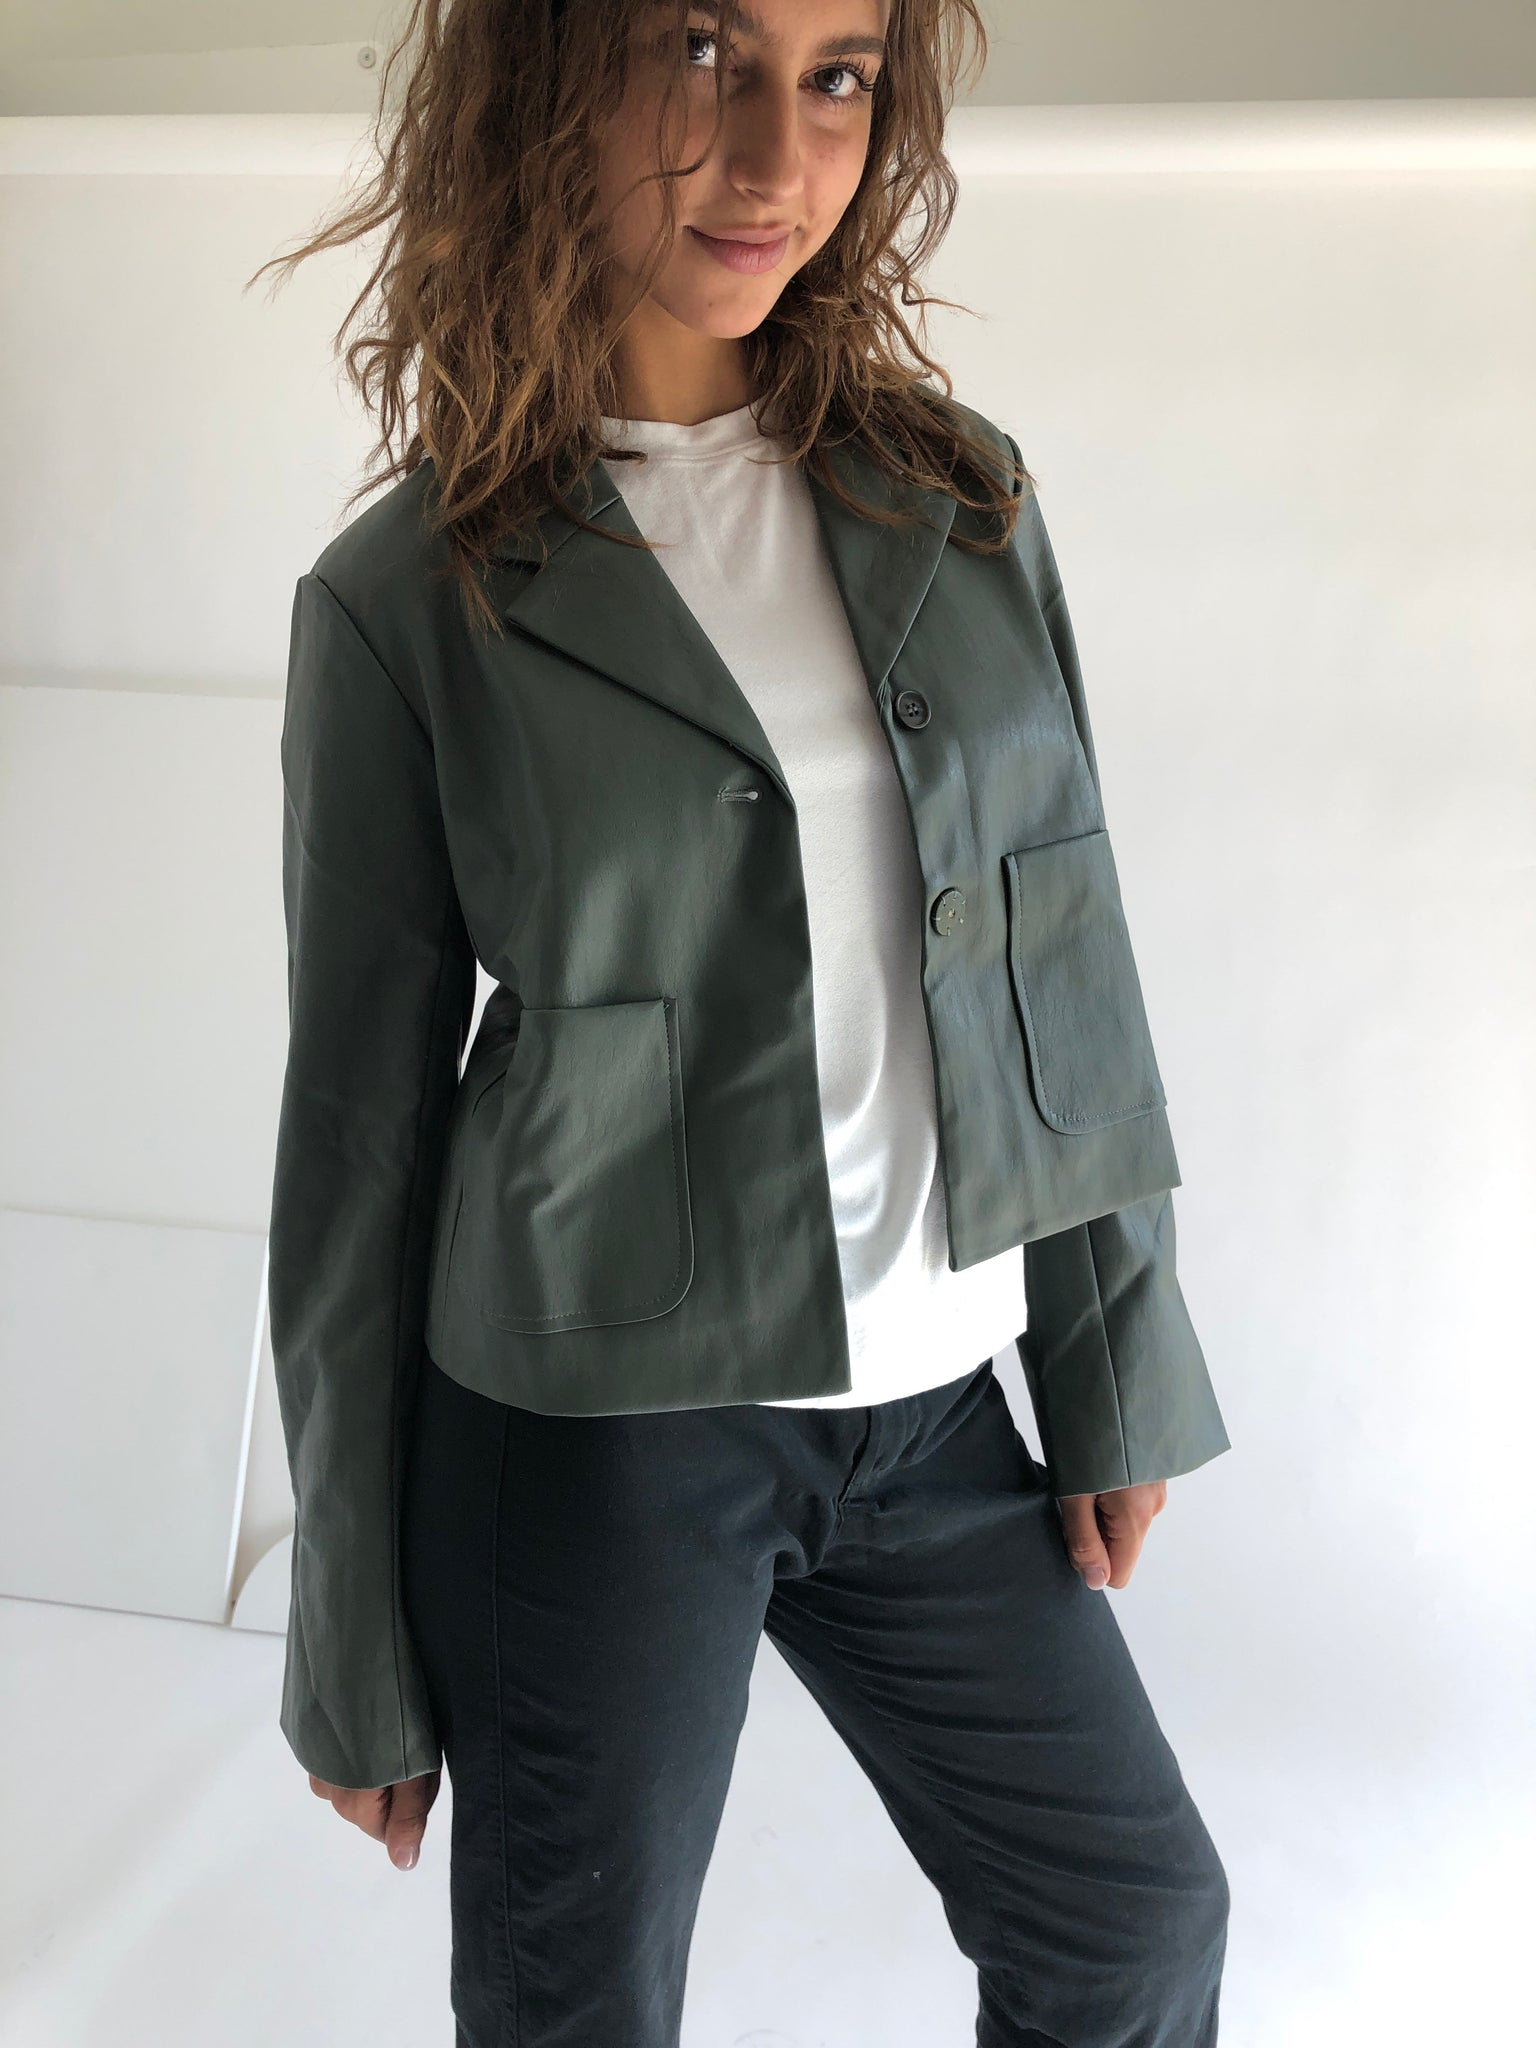 The Timothee Jacket